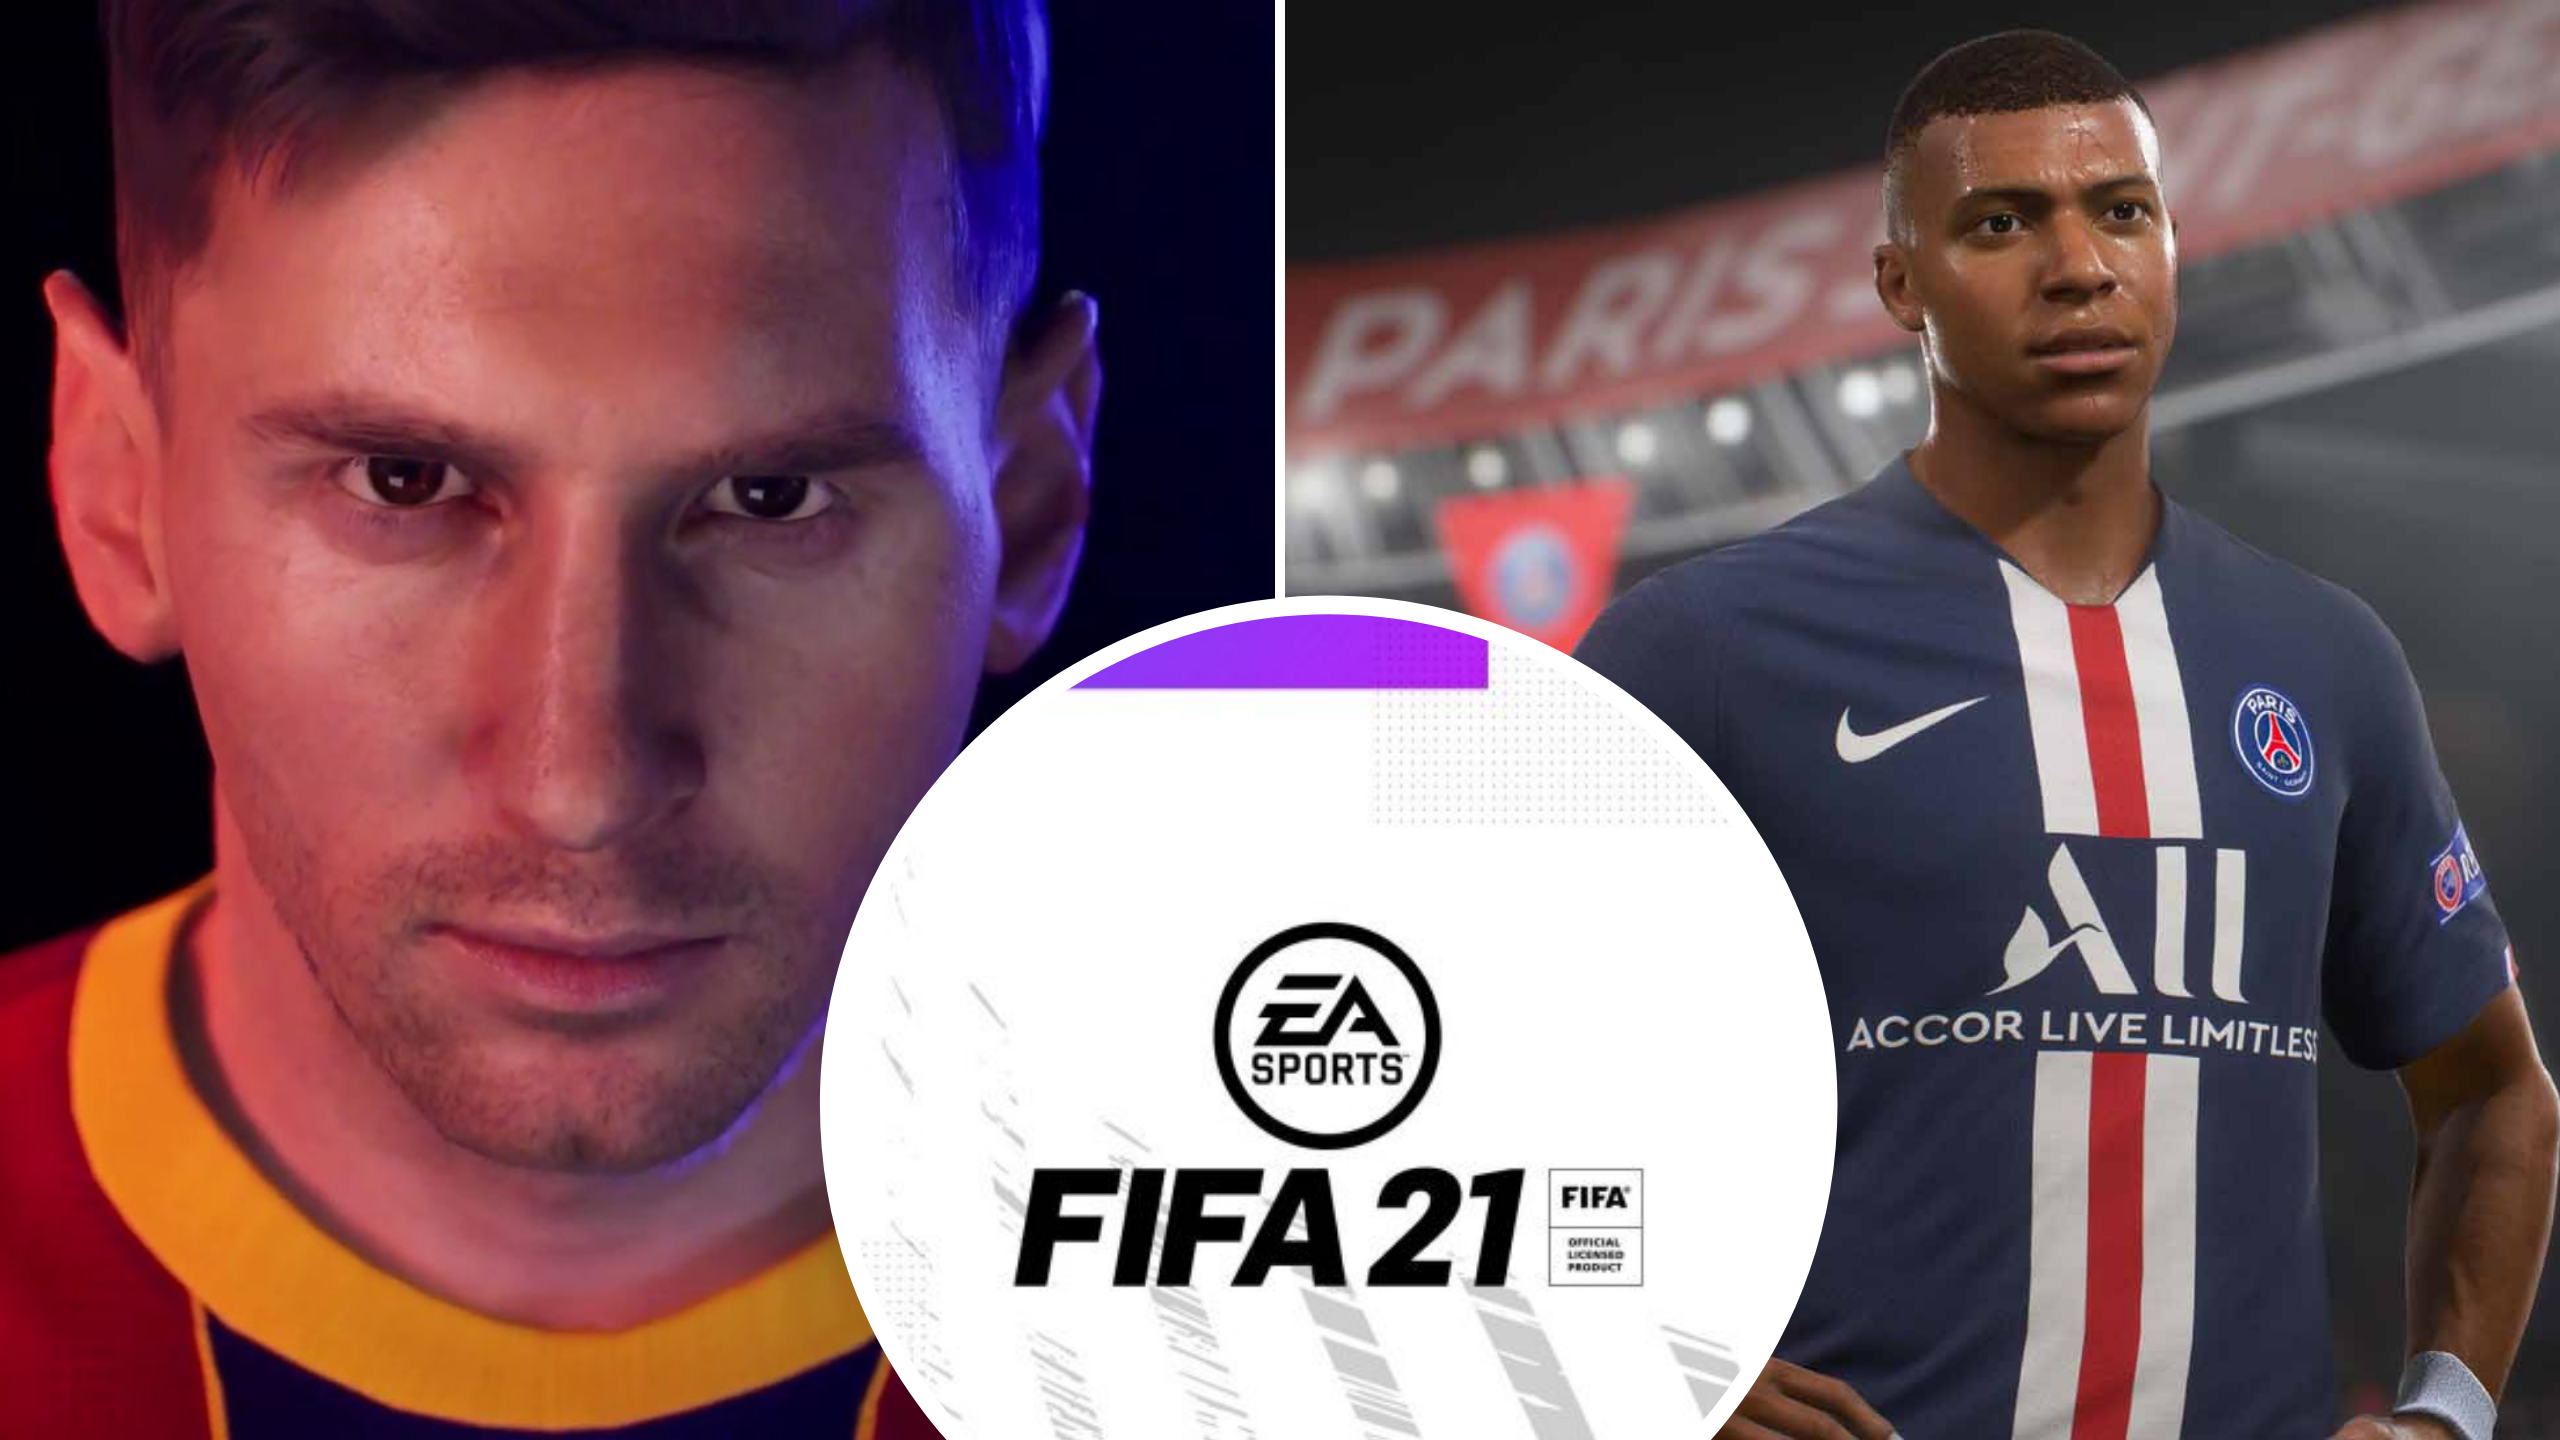 fifa fans are threatening to boycott fifa 21 after pes season update announcement sportbible sportbible